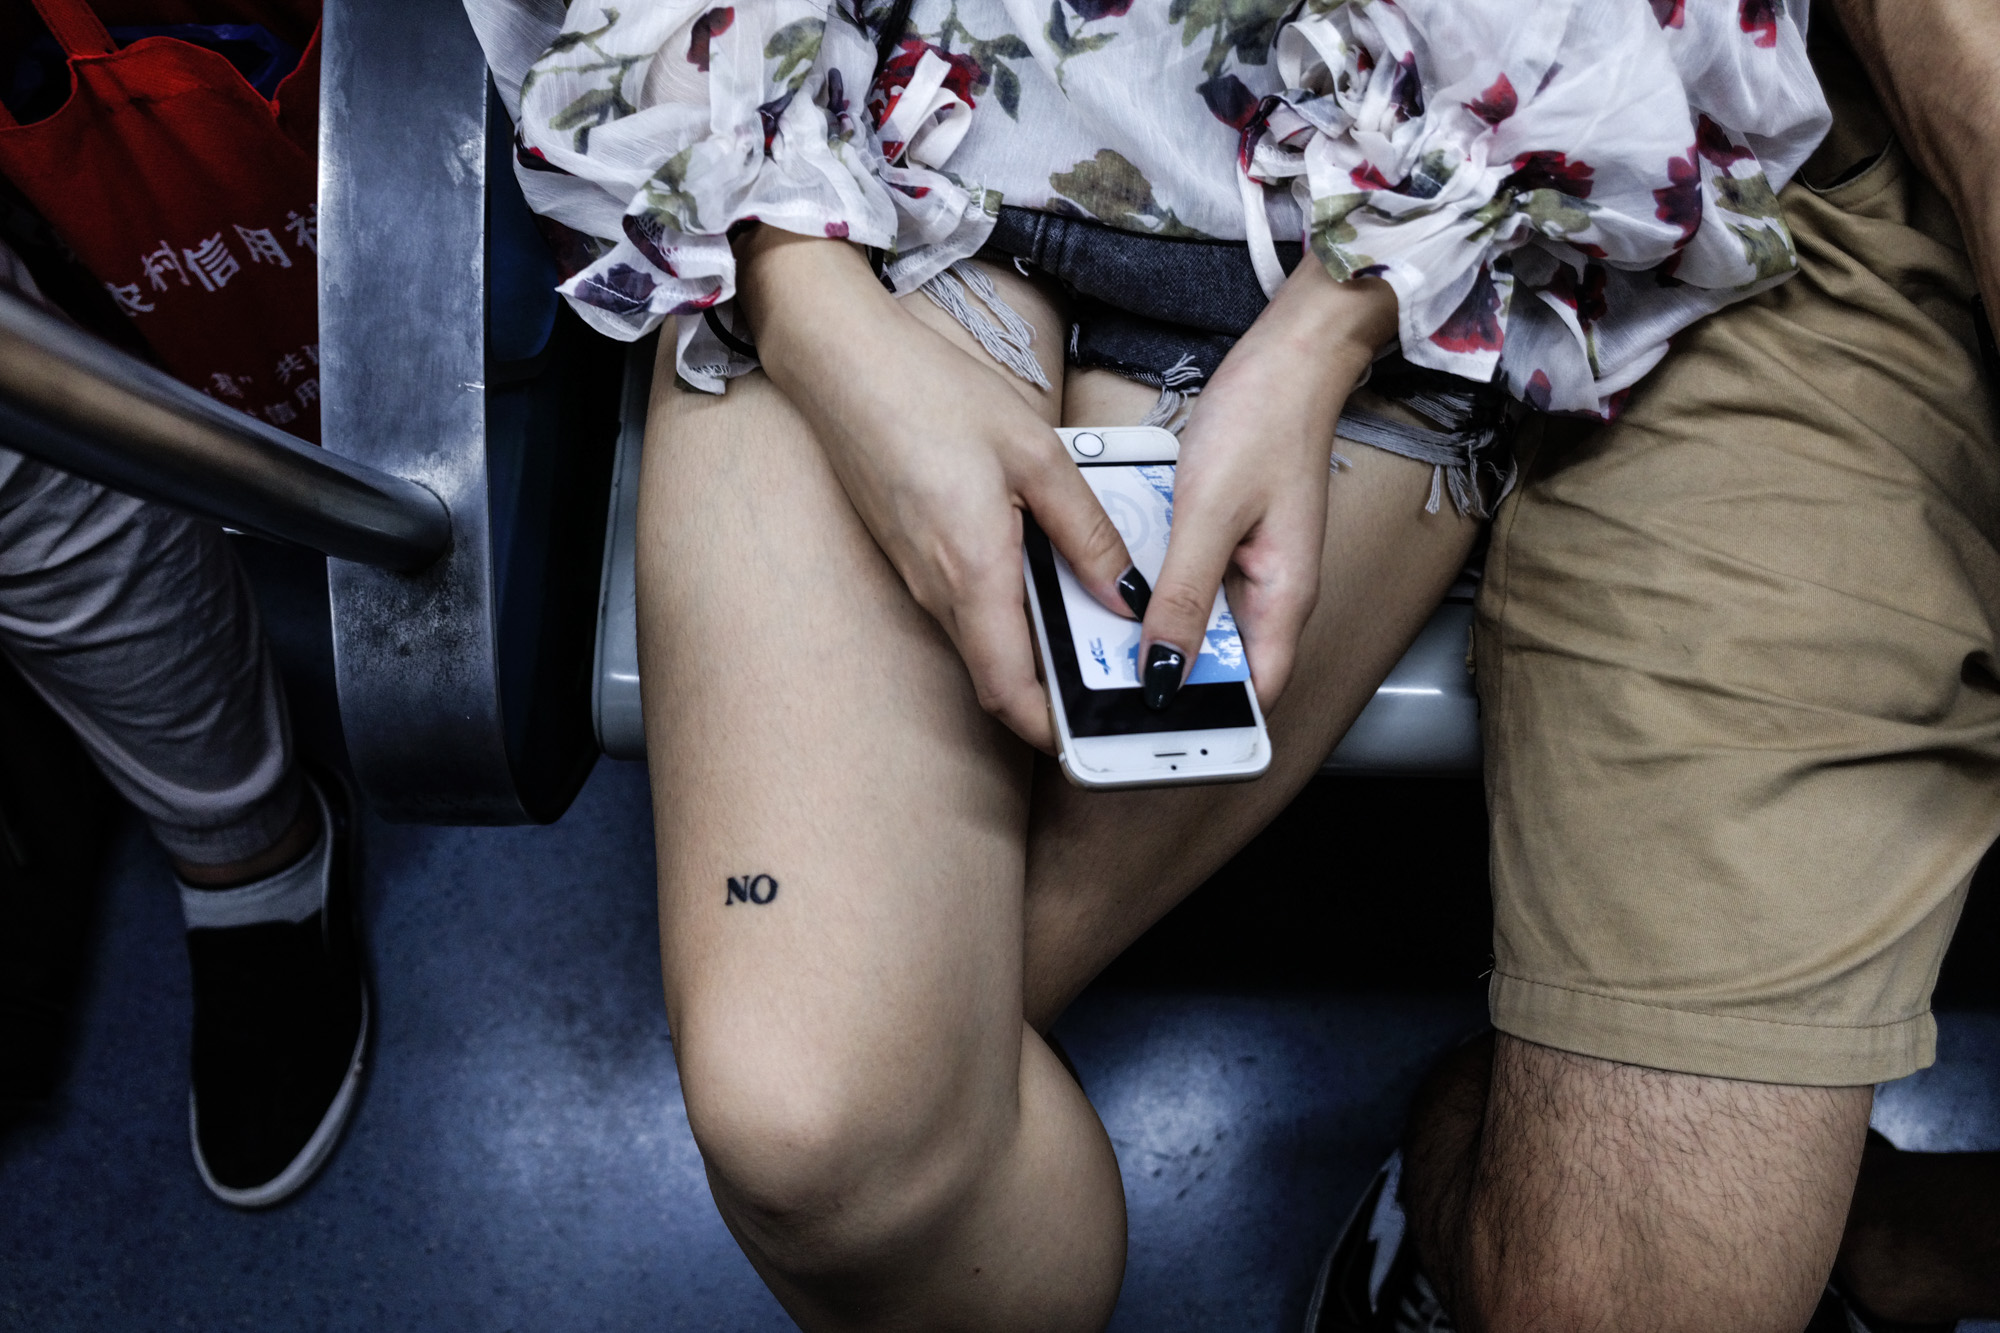 Girl with a NO/ON tattoo on the subway, Beijing, August 2017